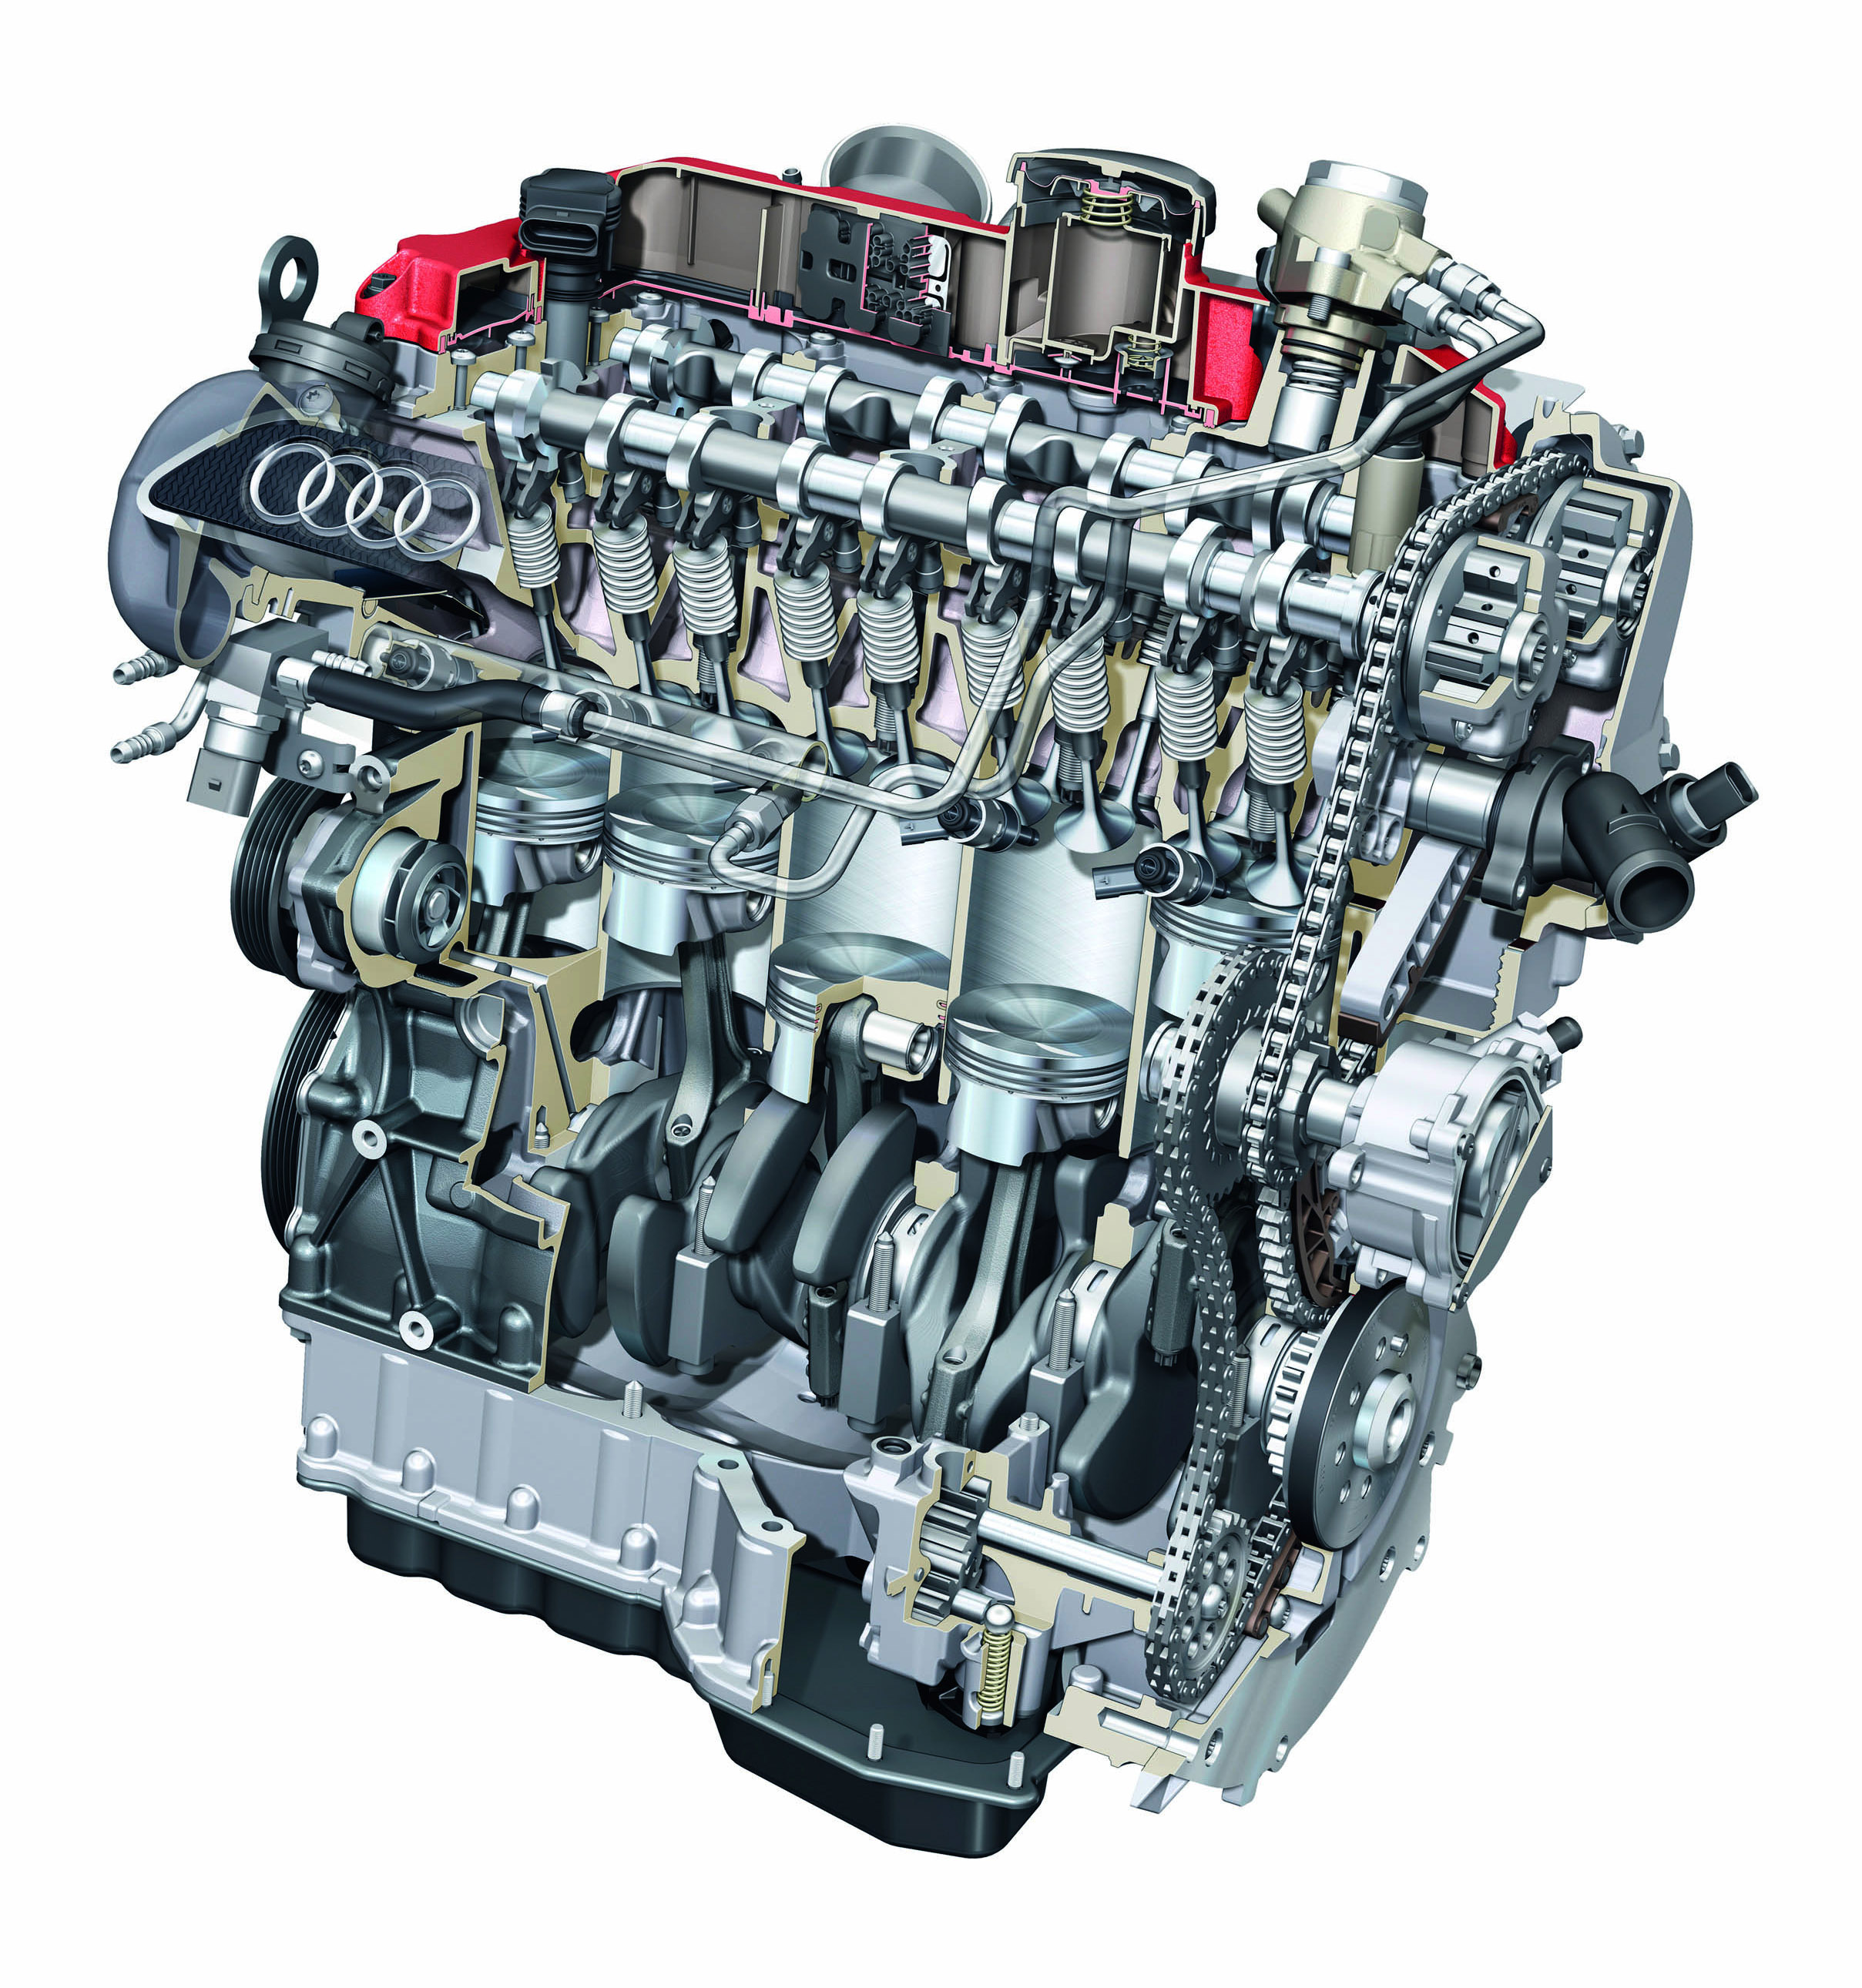 5 Cyl Engine Diagram Great Design Of Wiring 2002 Kia Sedona Instrument Cluster Fuse Box Amotmx Engines Cartype Volkswagen Cylinder Reliability